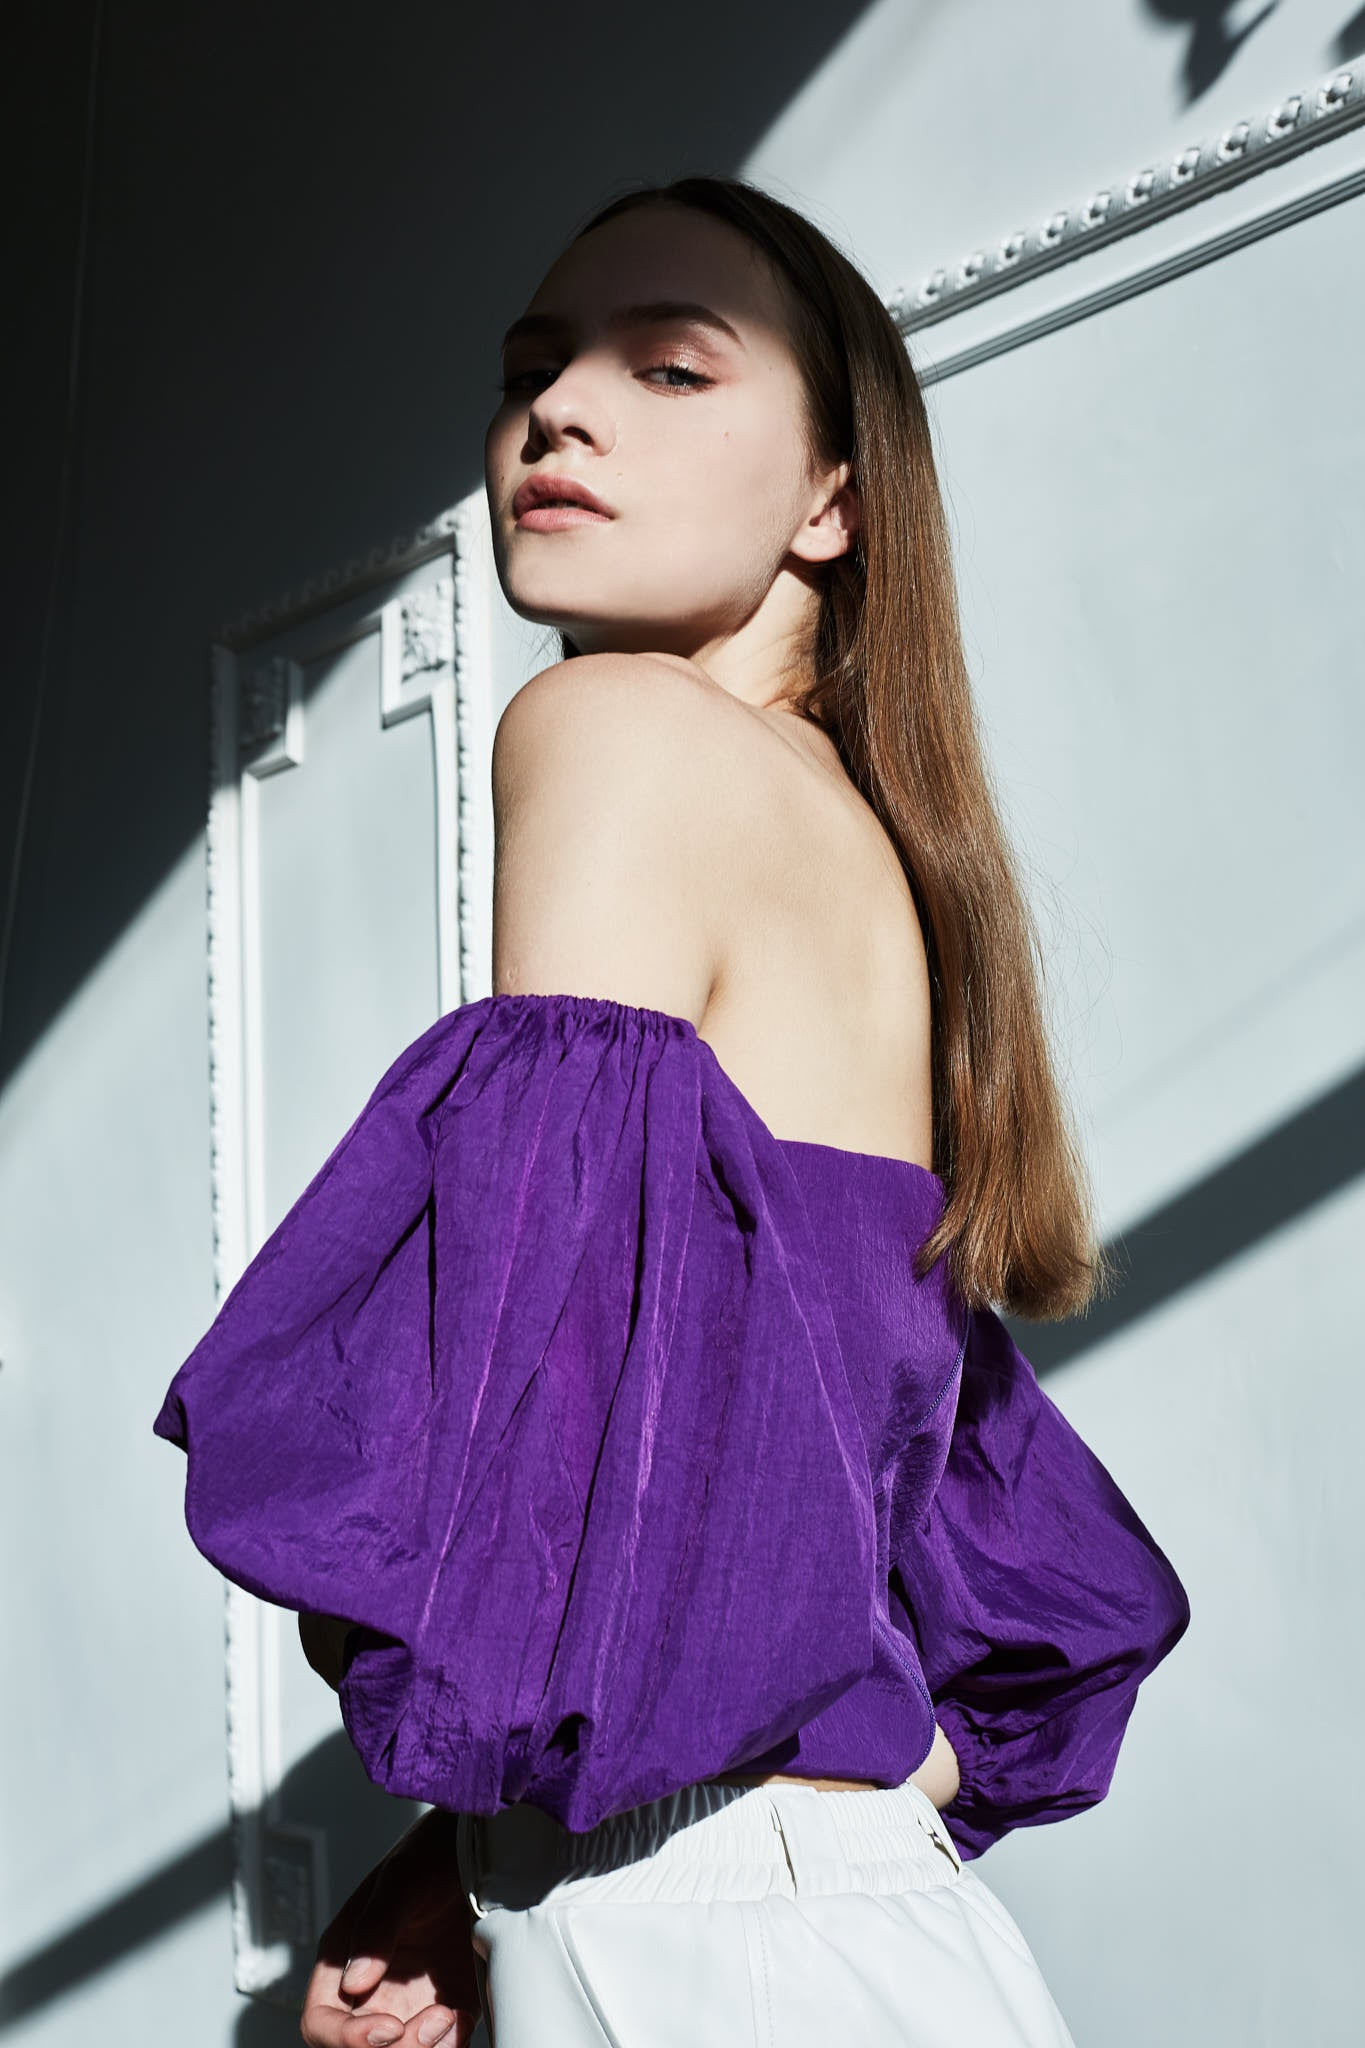 Le SLAP statement fashion clothing brand violet FRIDA top editorial fashion photoshoot Lithuanian model